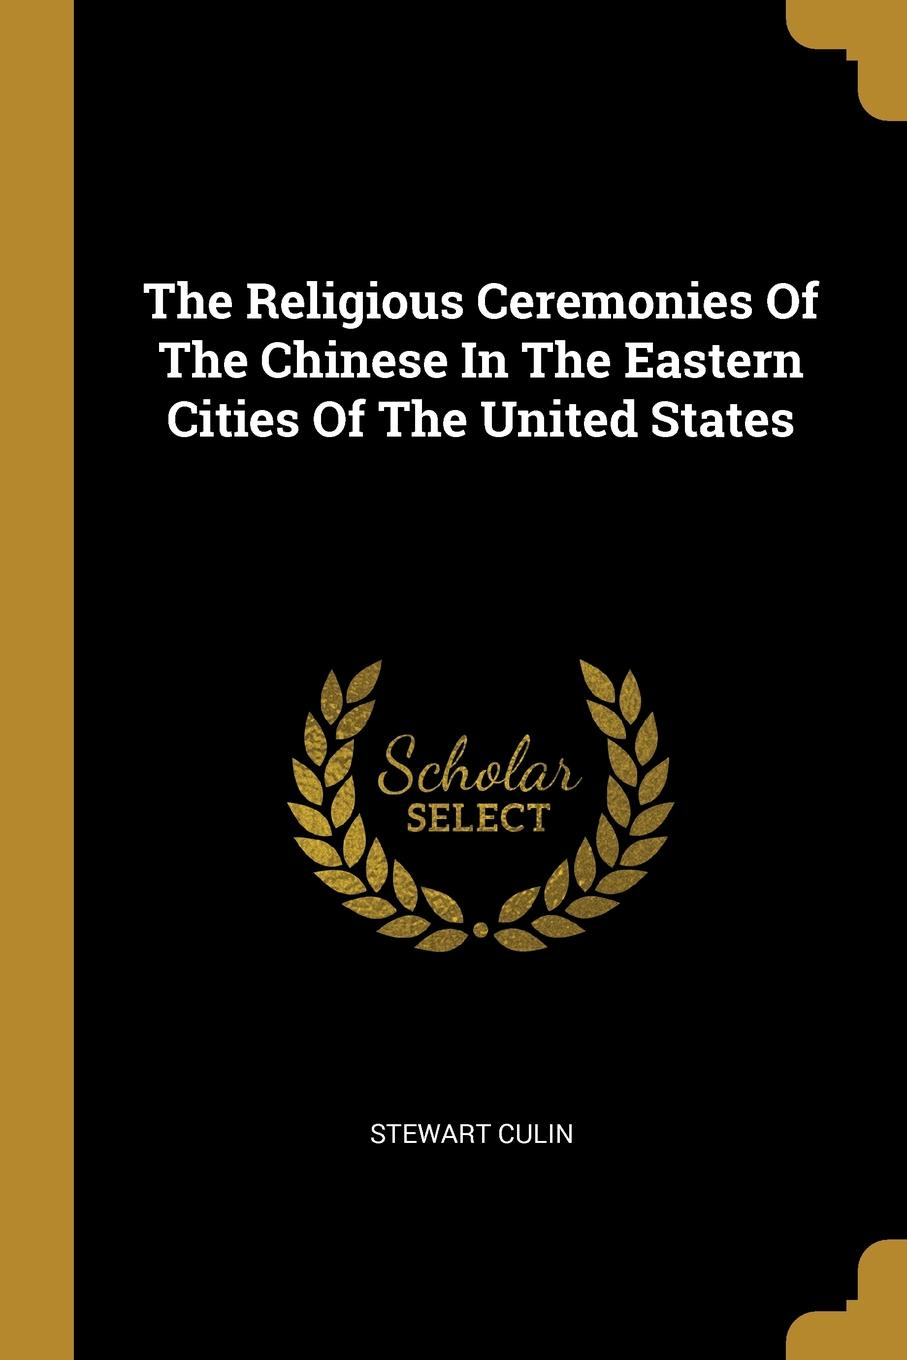 The Religious Ceremonies Of The Chinese In The Eastern Cities Of The United States